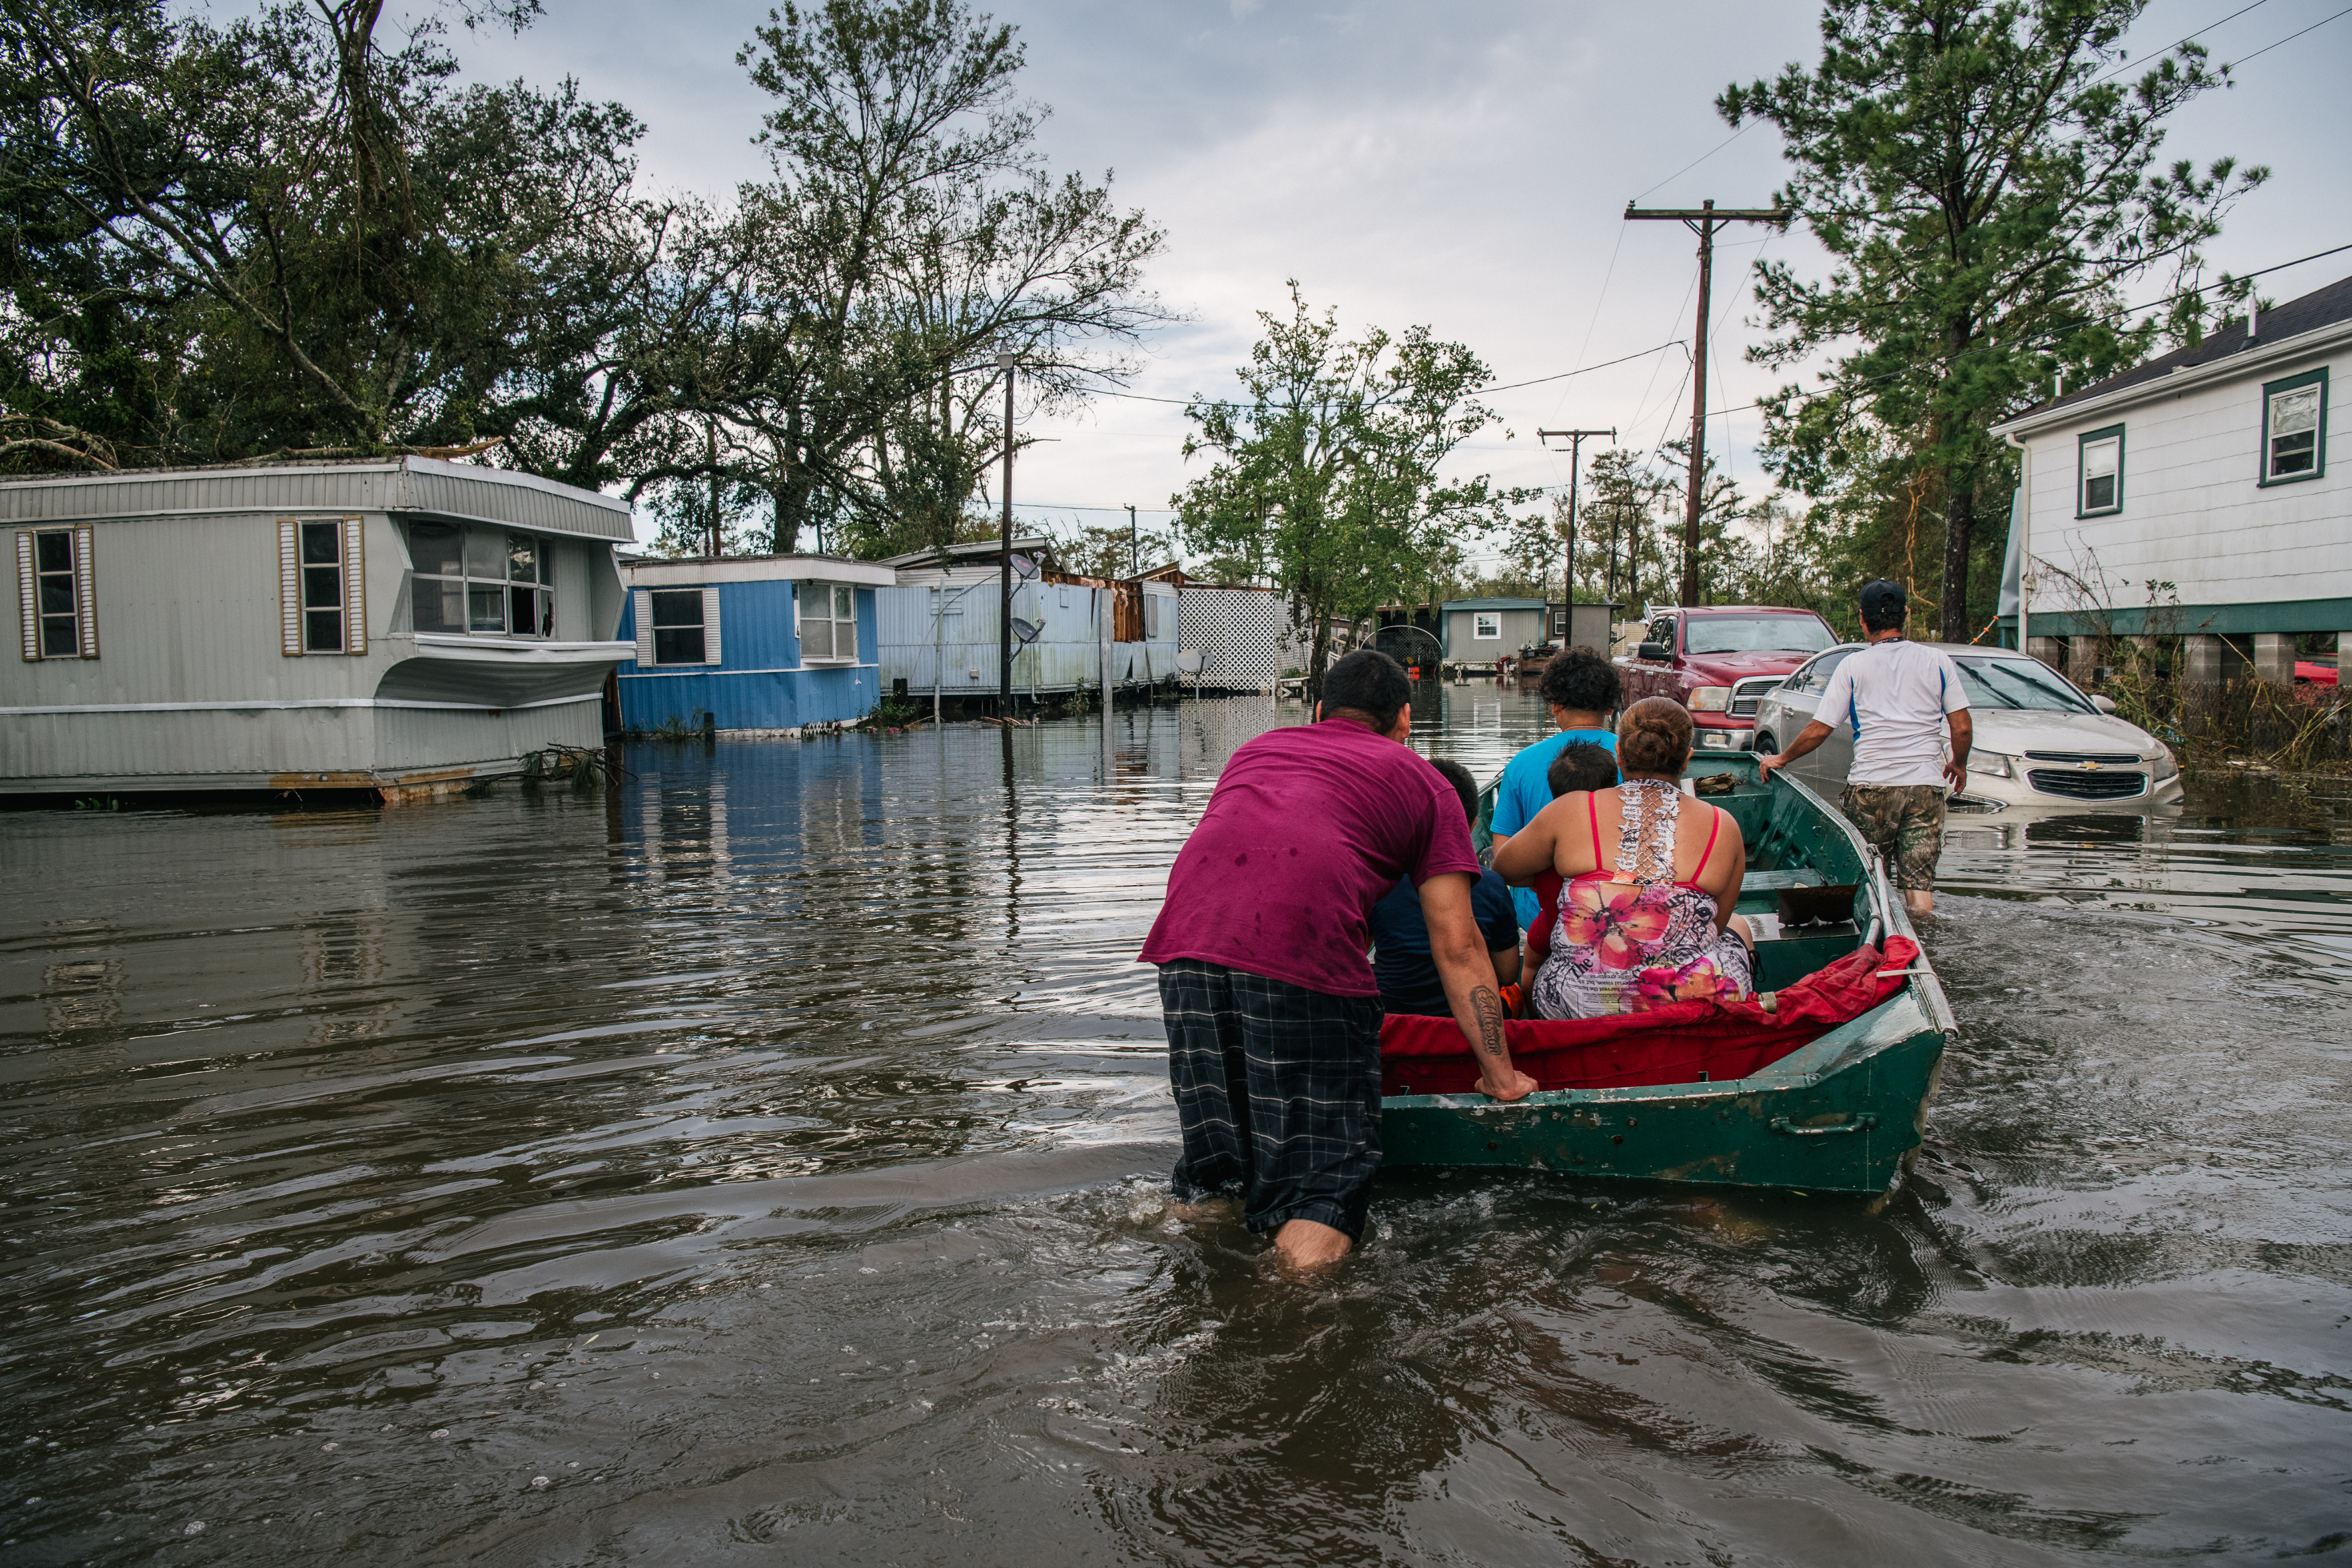 The Maldonado family travel by boat to their home after it was flooded during Hurricane Ida on August 31, 2021 in Barataria, Louisiana. (Photo by Brandon Bell/Getty Images)